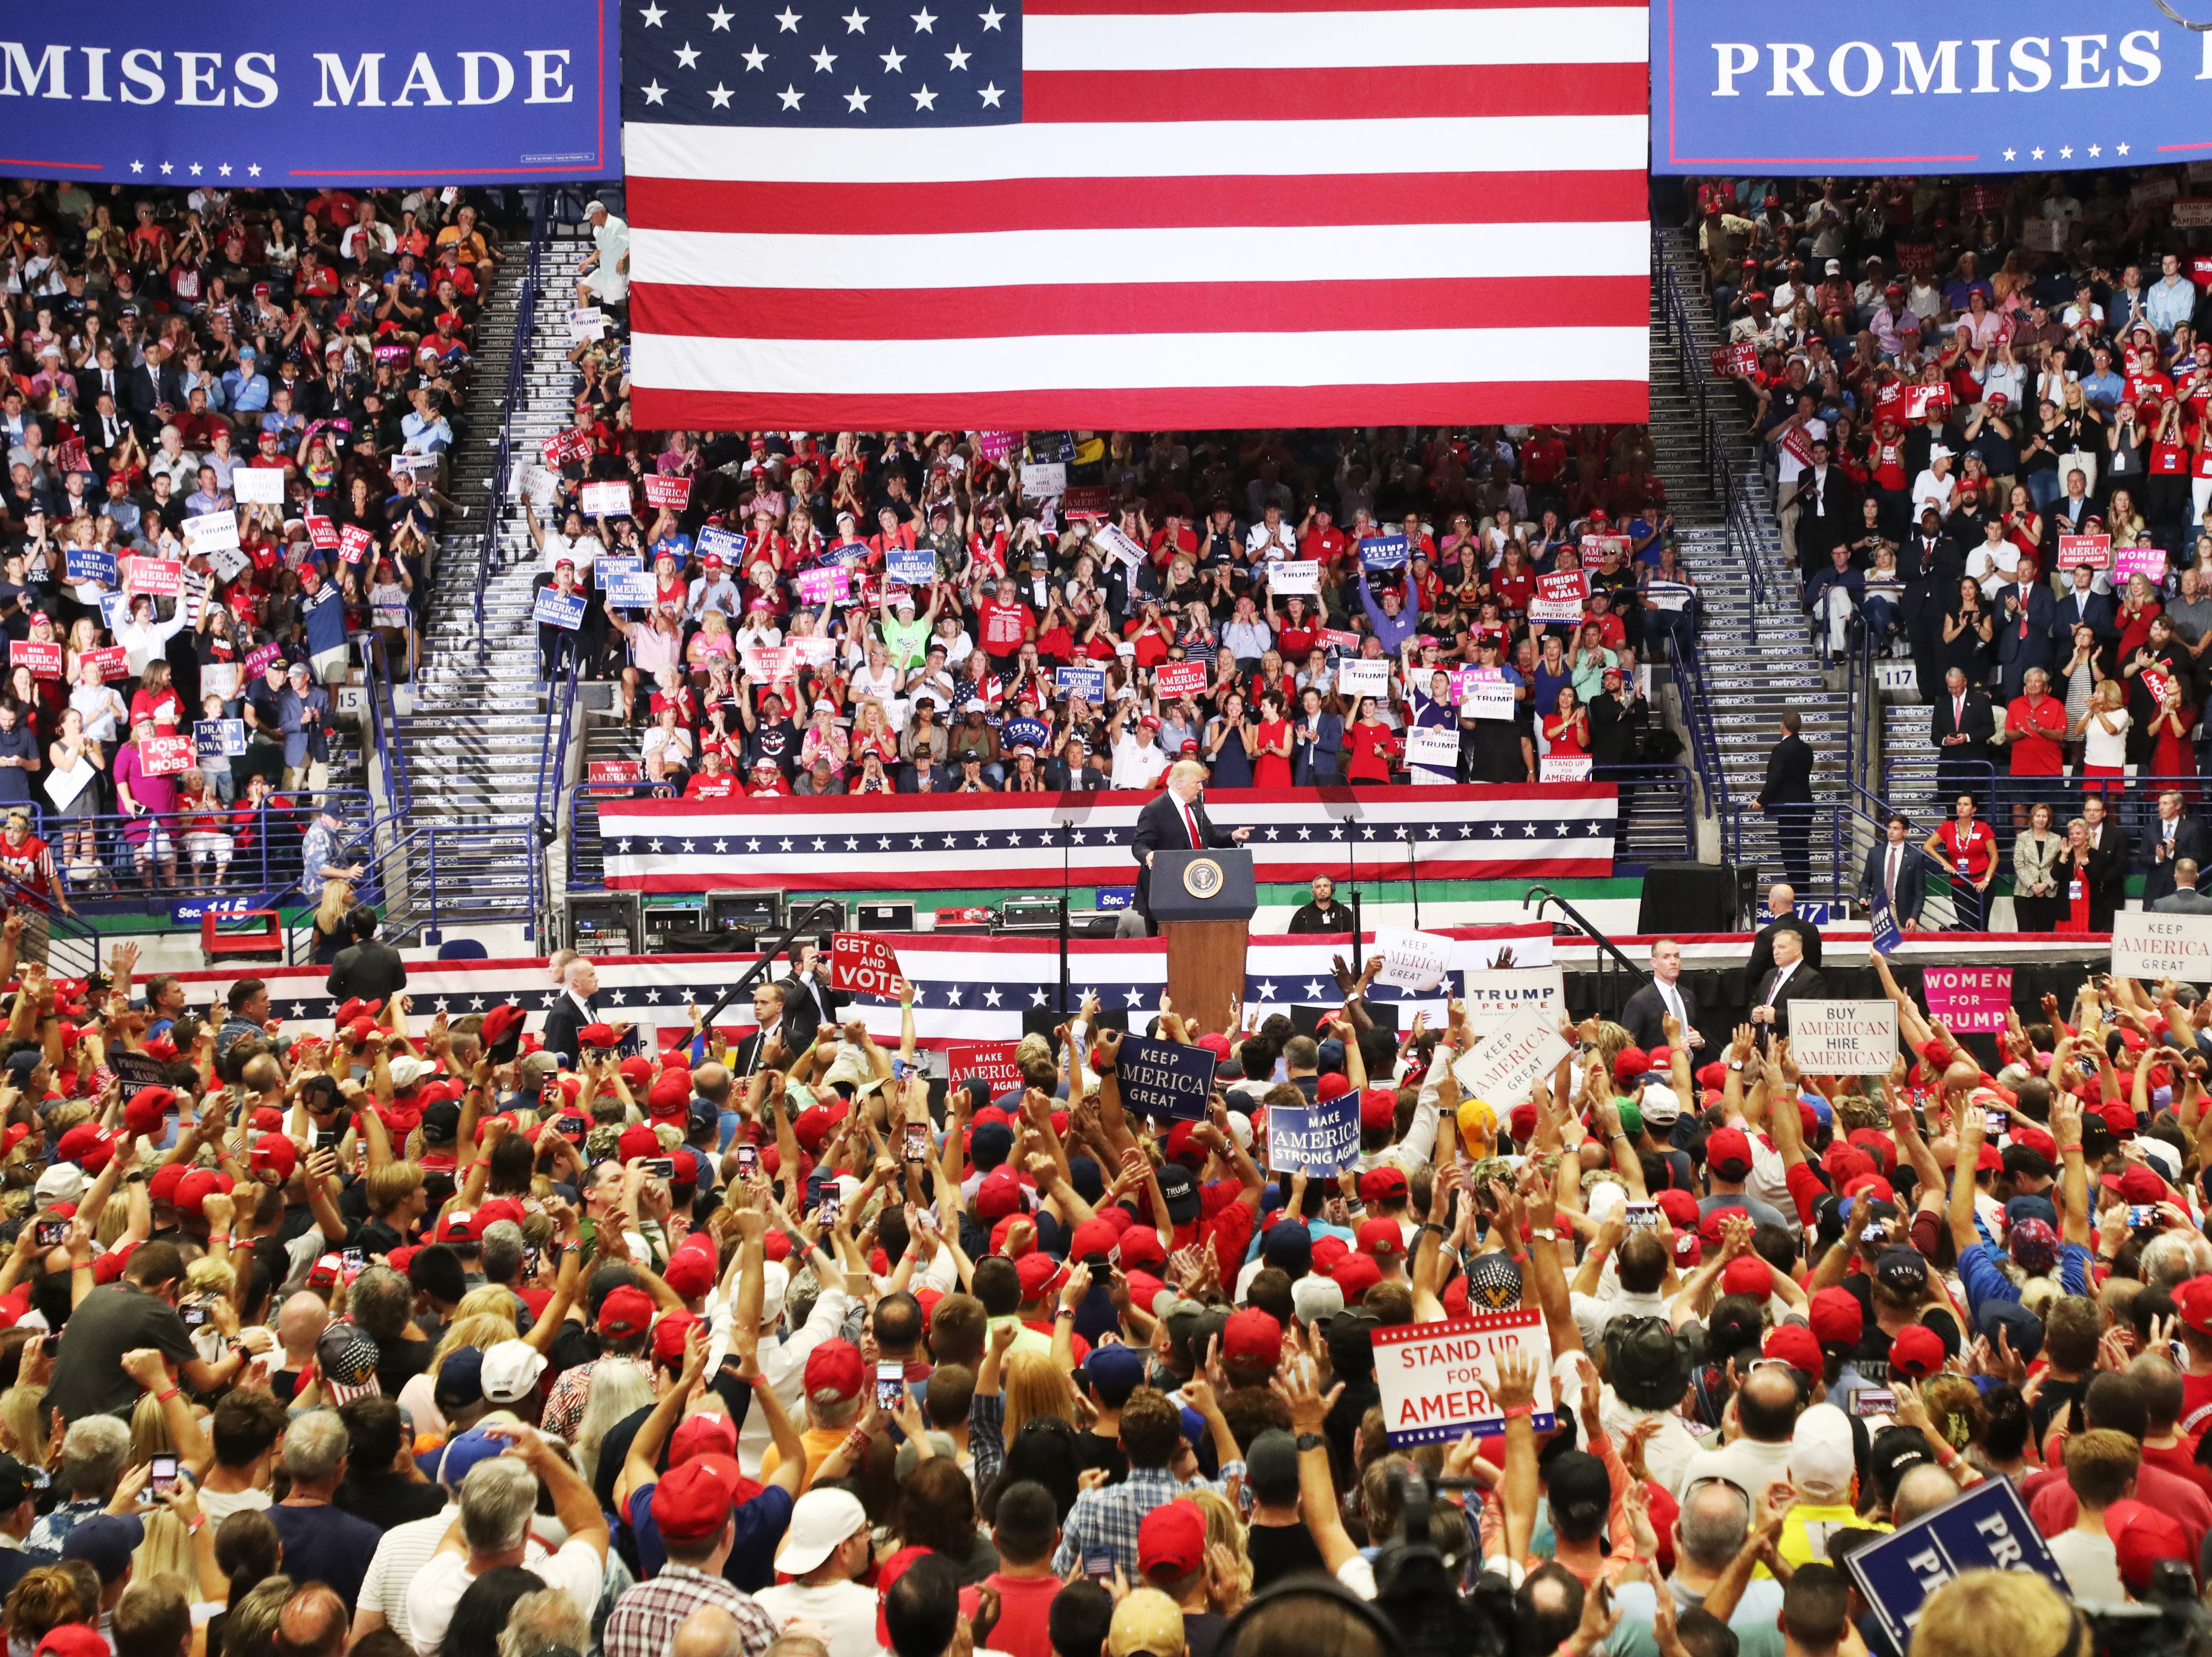 Donald Trump speaks at the Make America Great Again rally at Hertz Arena in Estero on Wednesday Oct. 31, 2018.